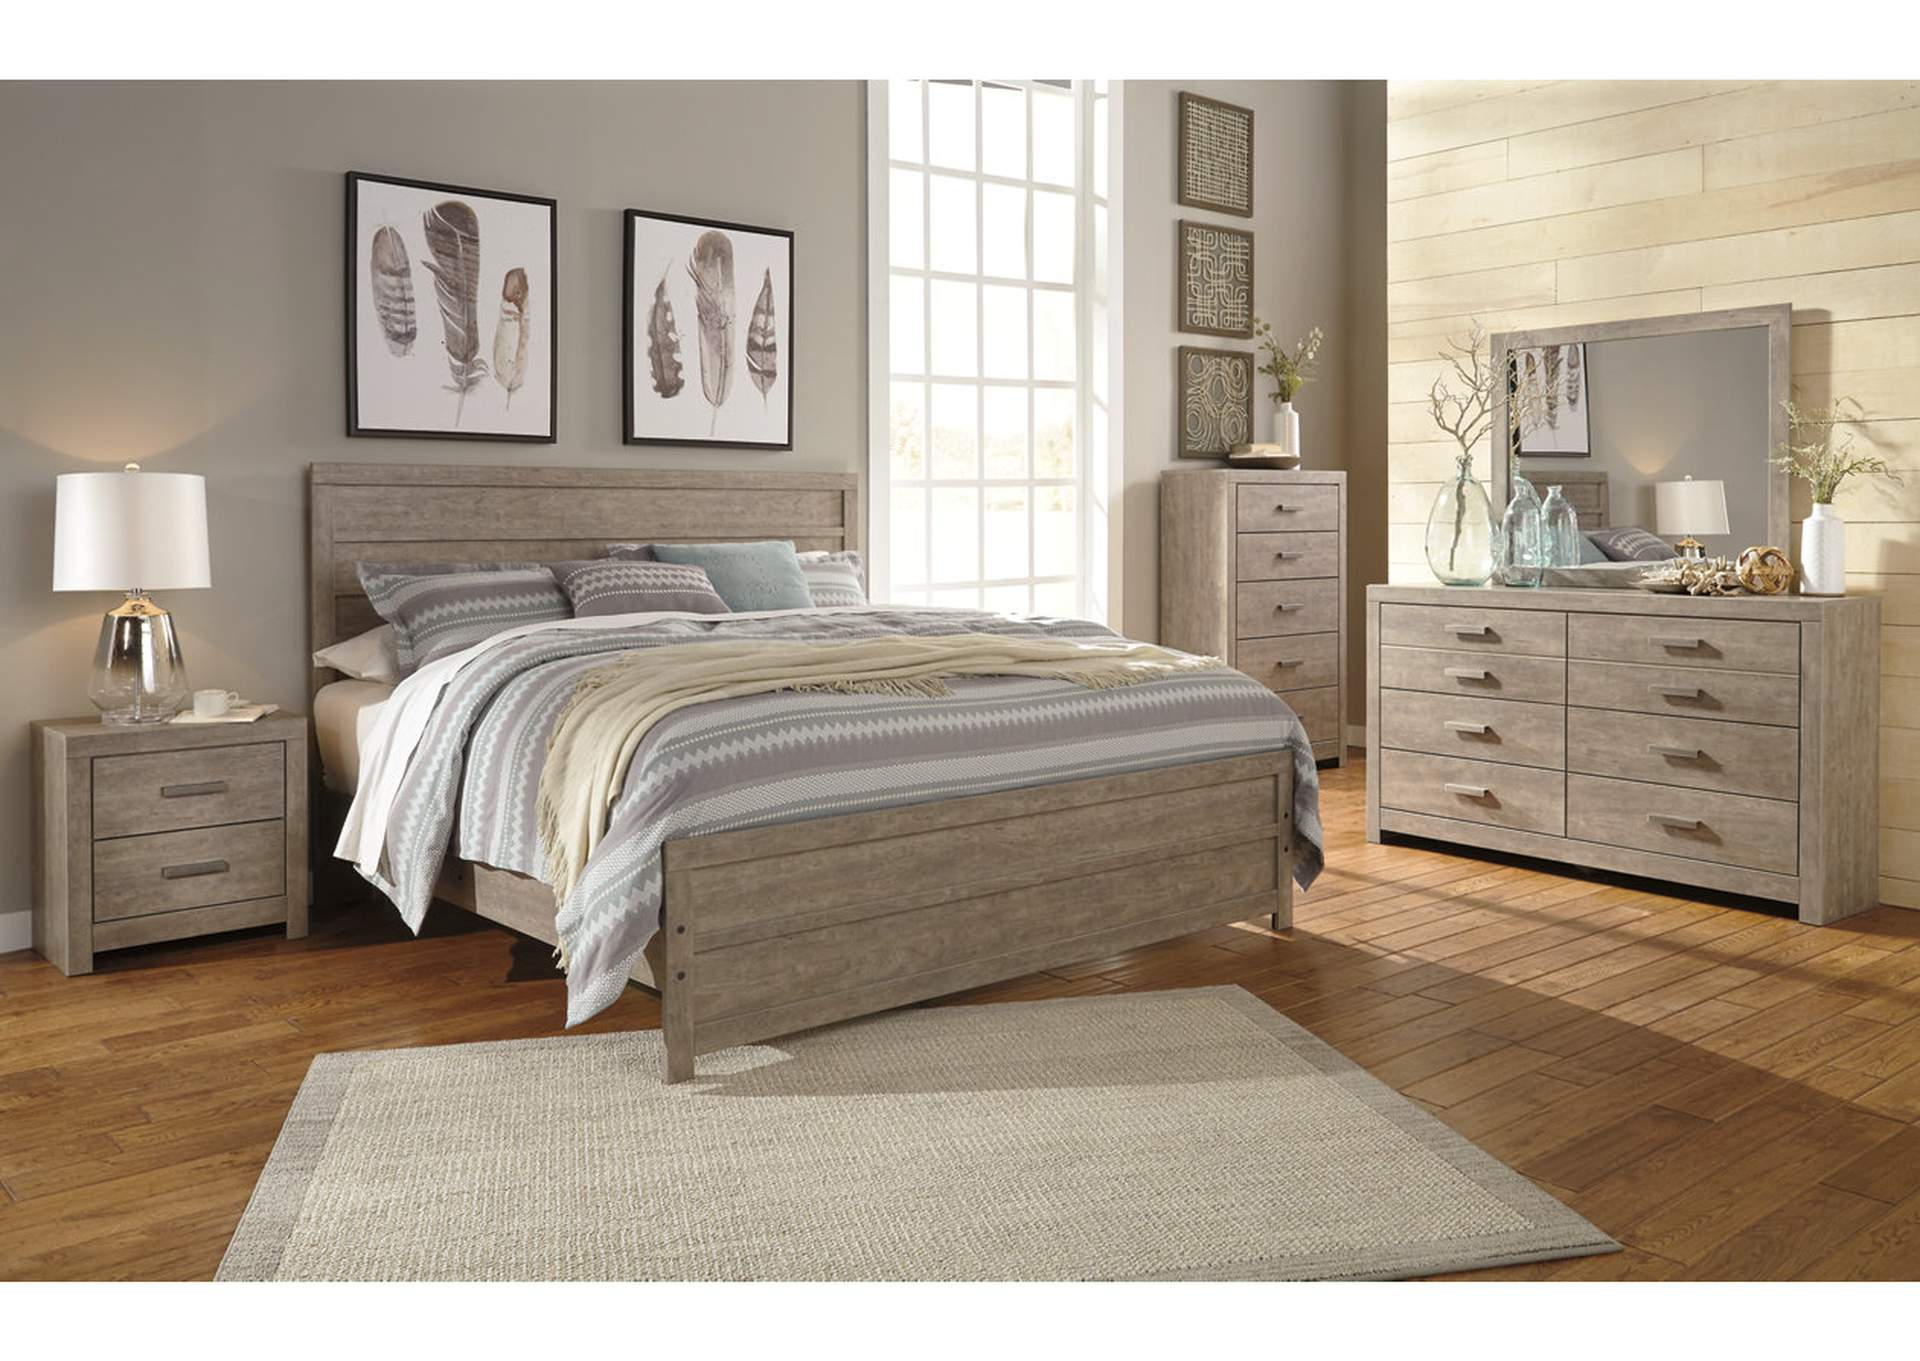 Culverbach Gray King Panel Bed w/Dresser and Mirror,Signature Design By Ashley